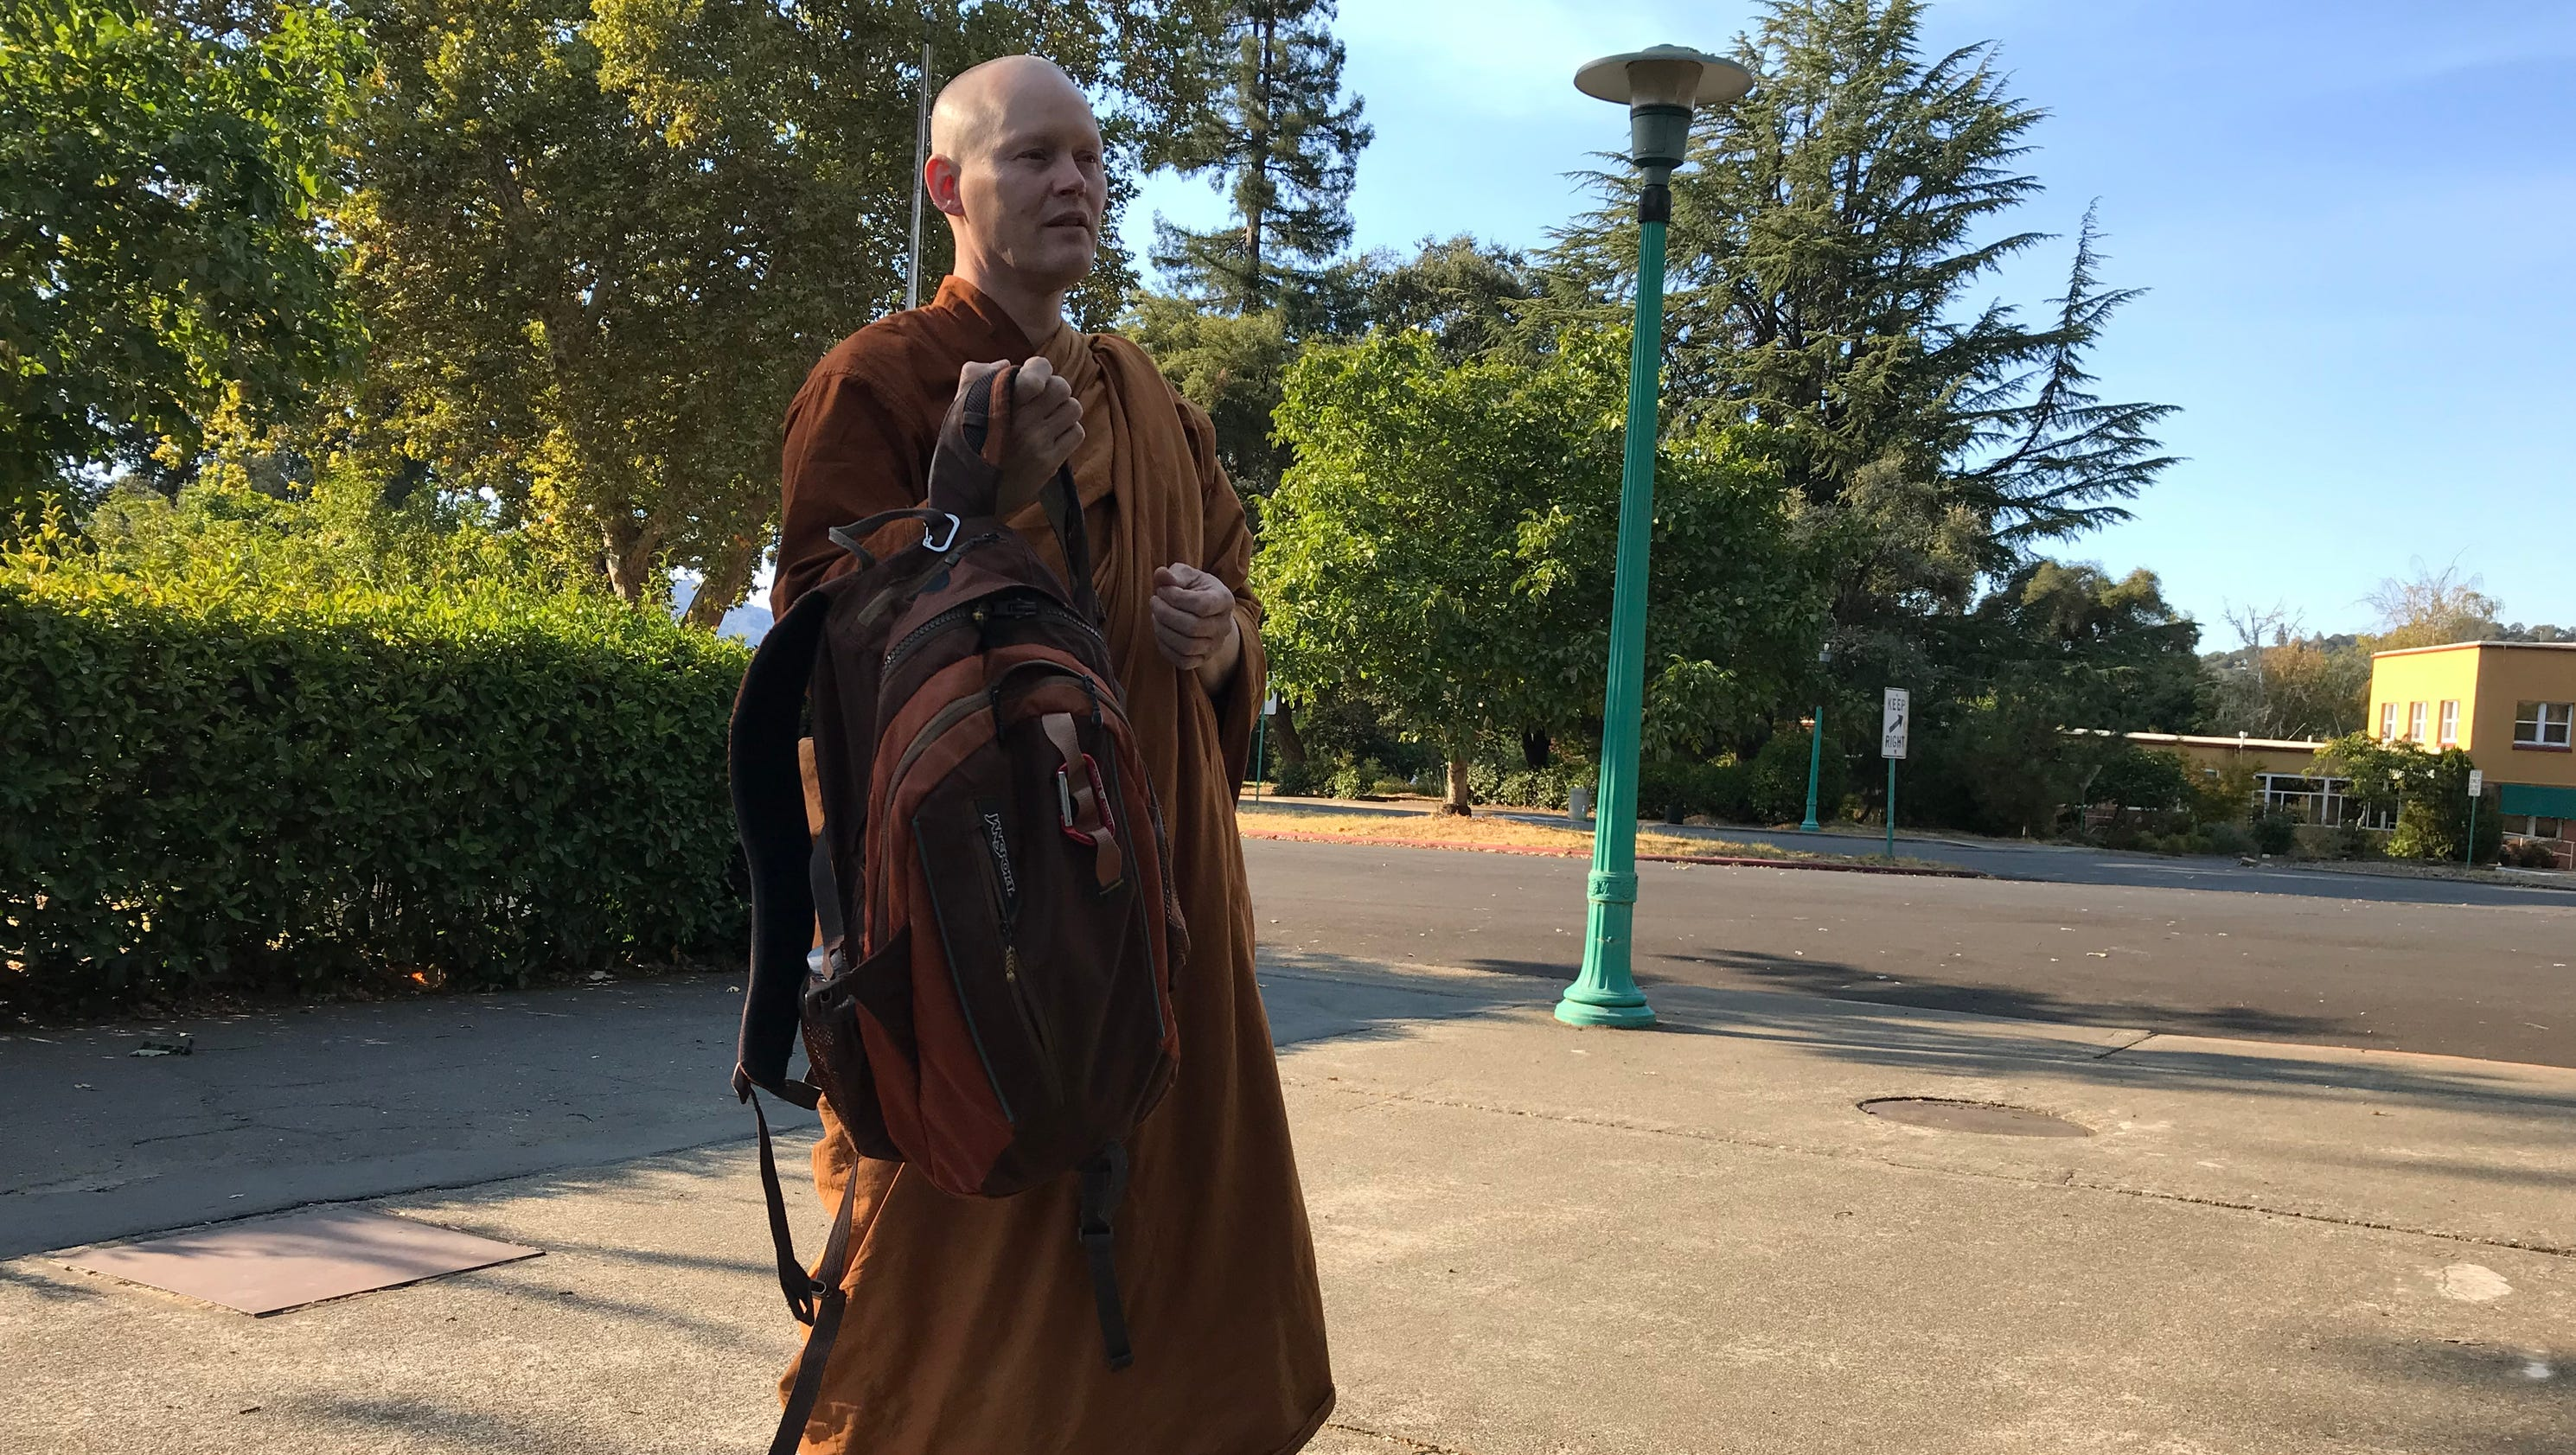 'That could be my death': Monks face flames at California monastery